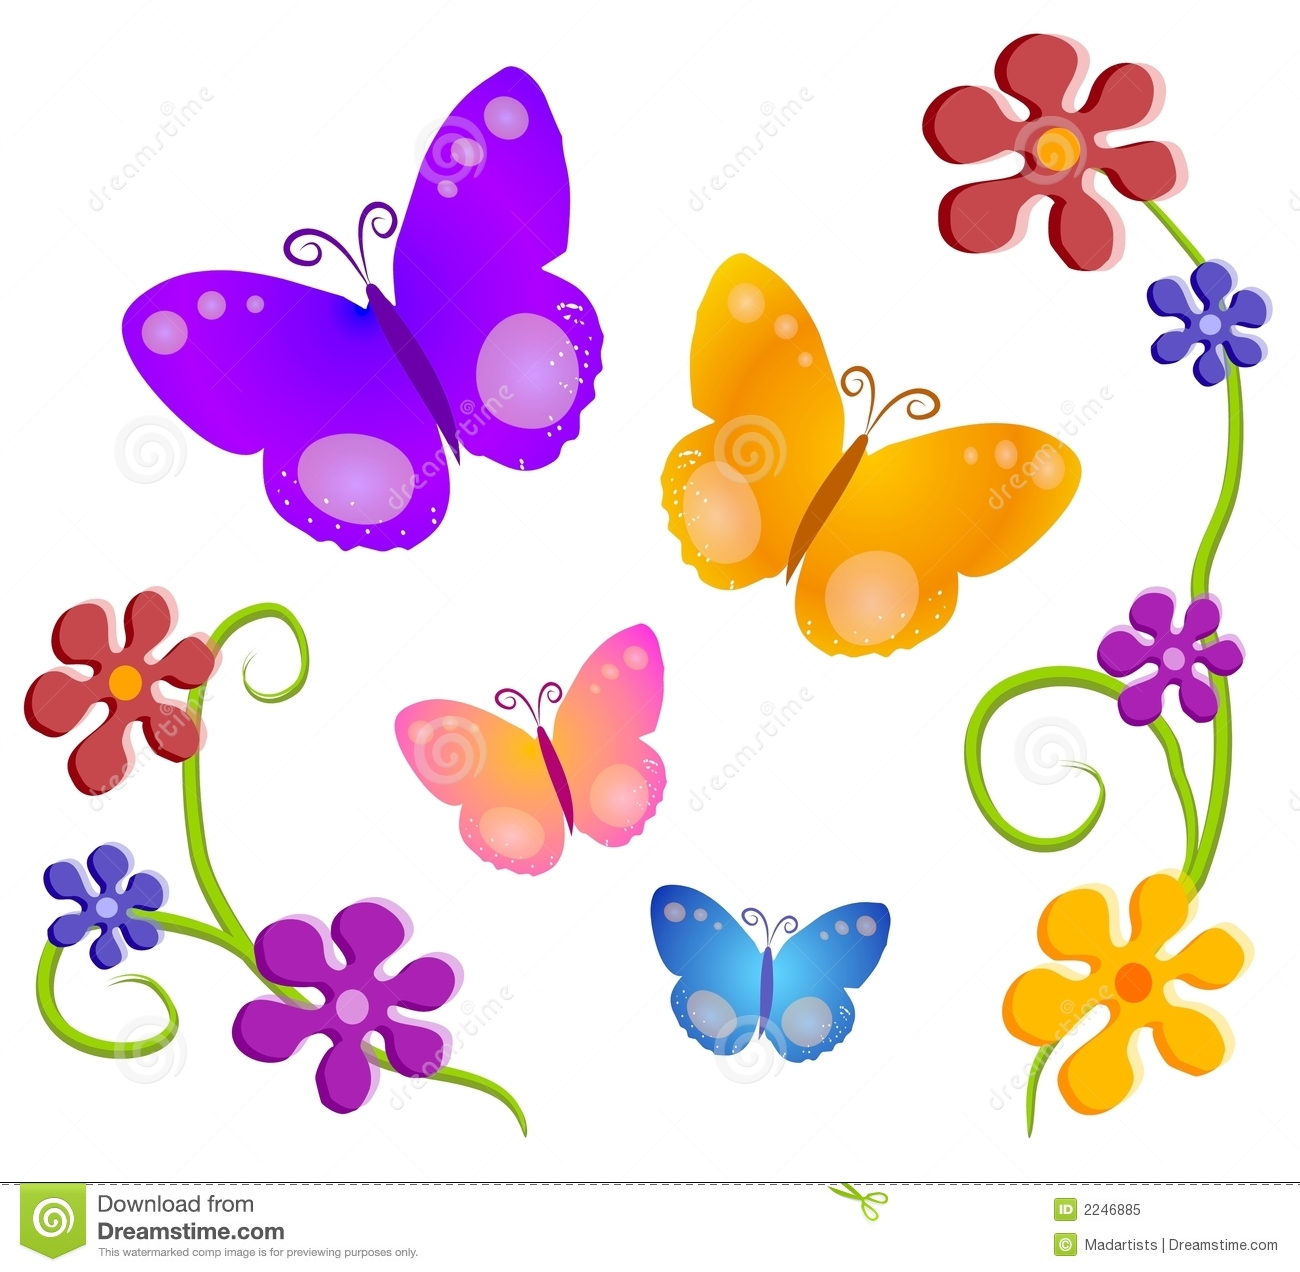 Flowers And Butterflies Clipart Images